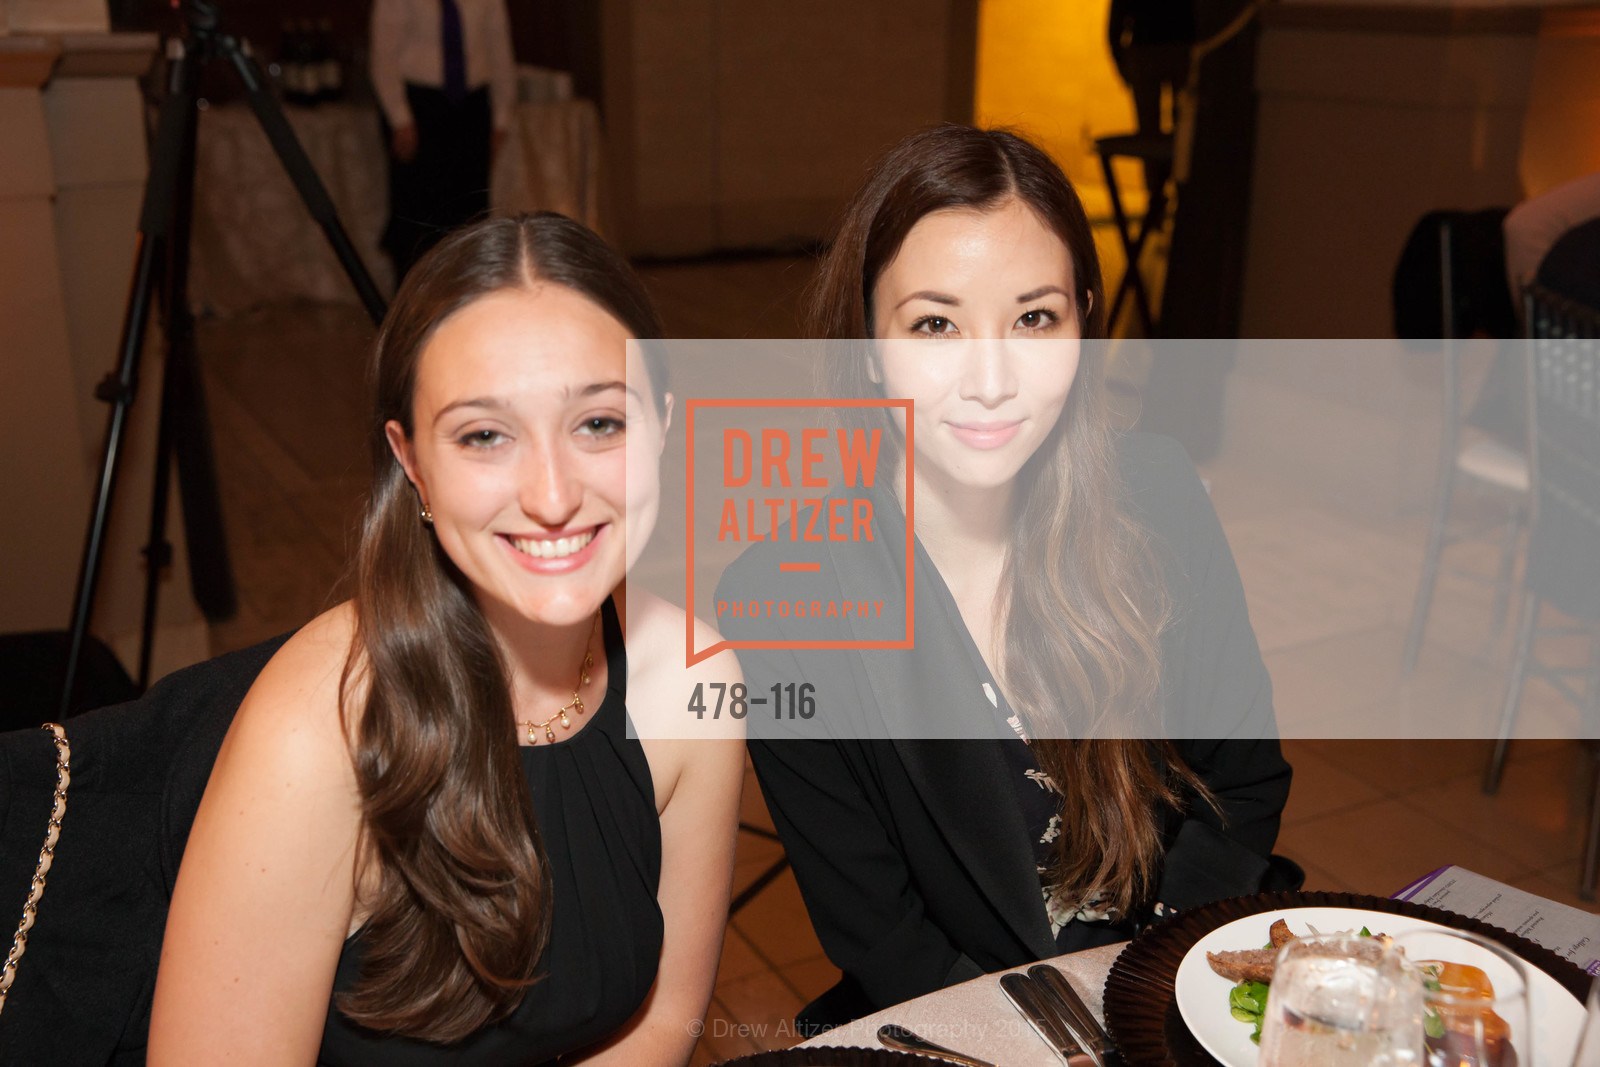 Maddison Skinner, Aspire Public Schools 2nd Annual Gala, Bently Reserve, May 20th, 2015,Drew Altizer, Drew Altizer Photography, full-service agency, private events, San Francisco photographer, photographer california